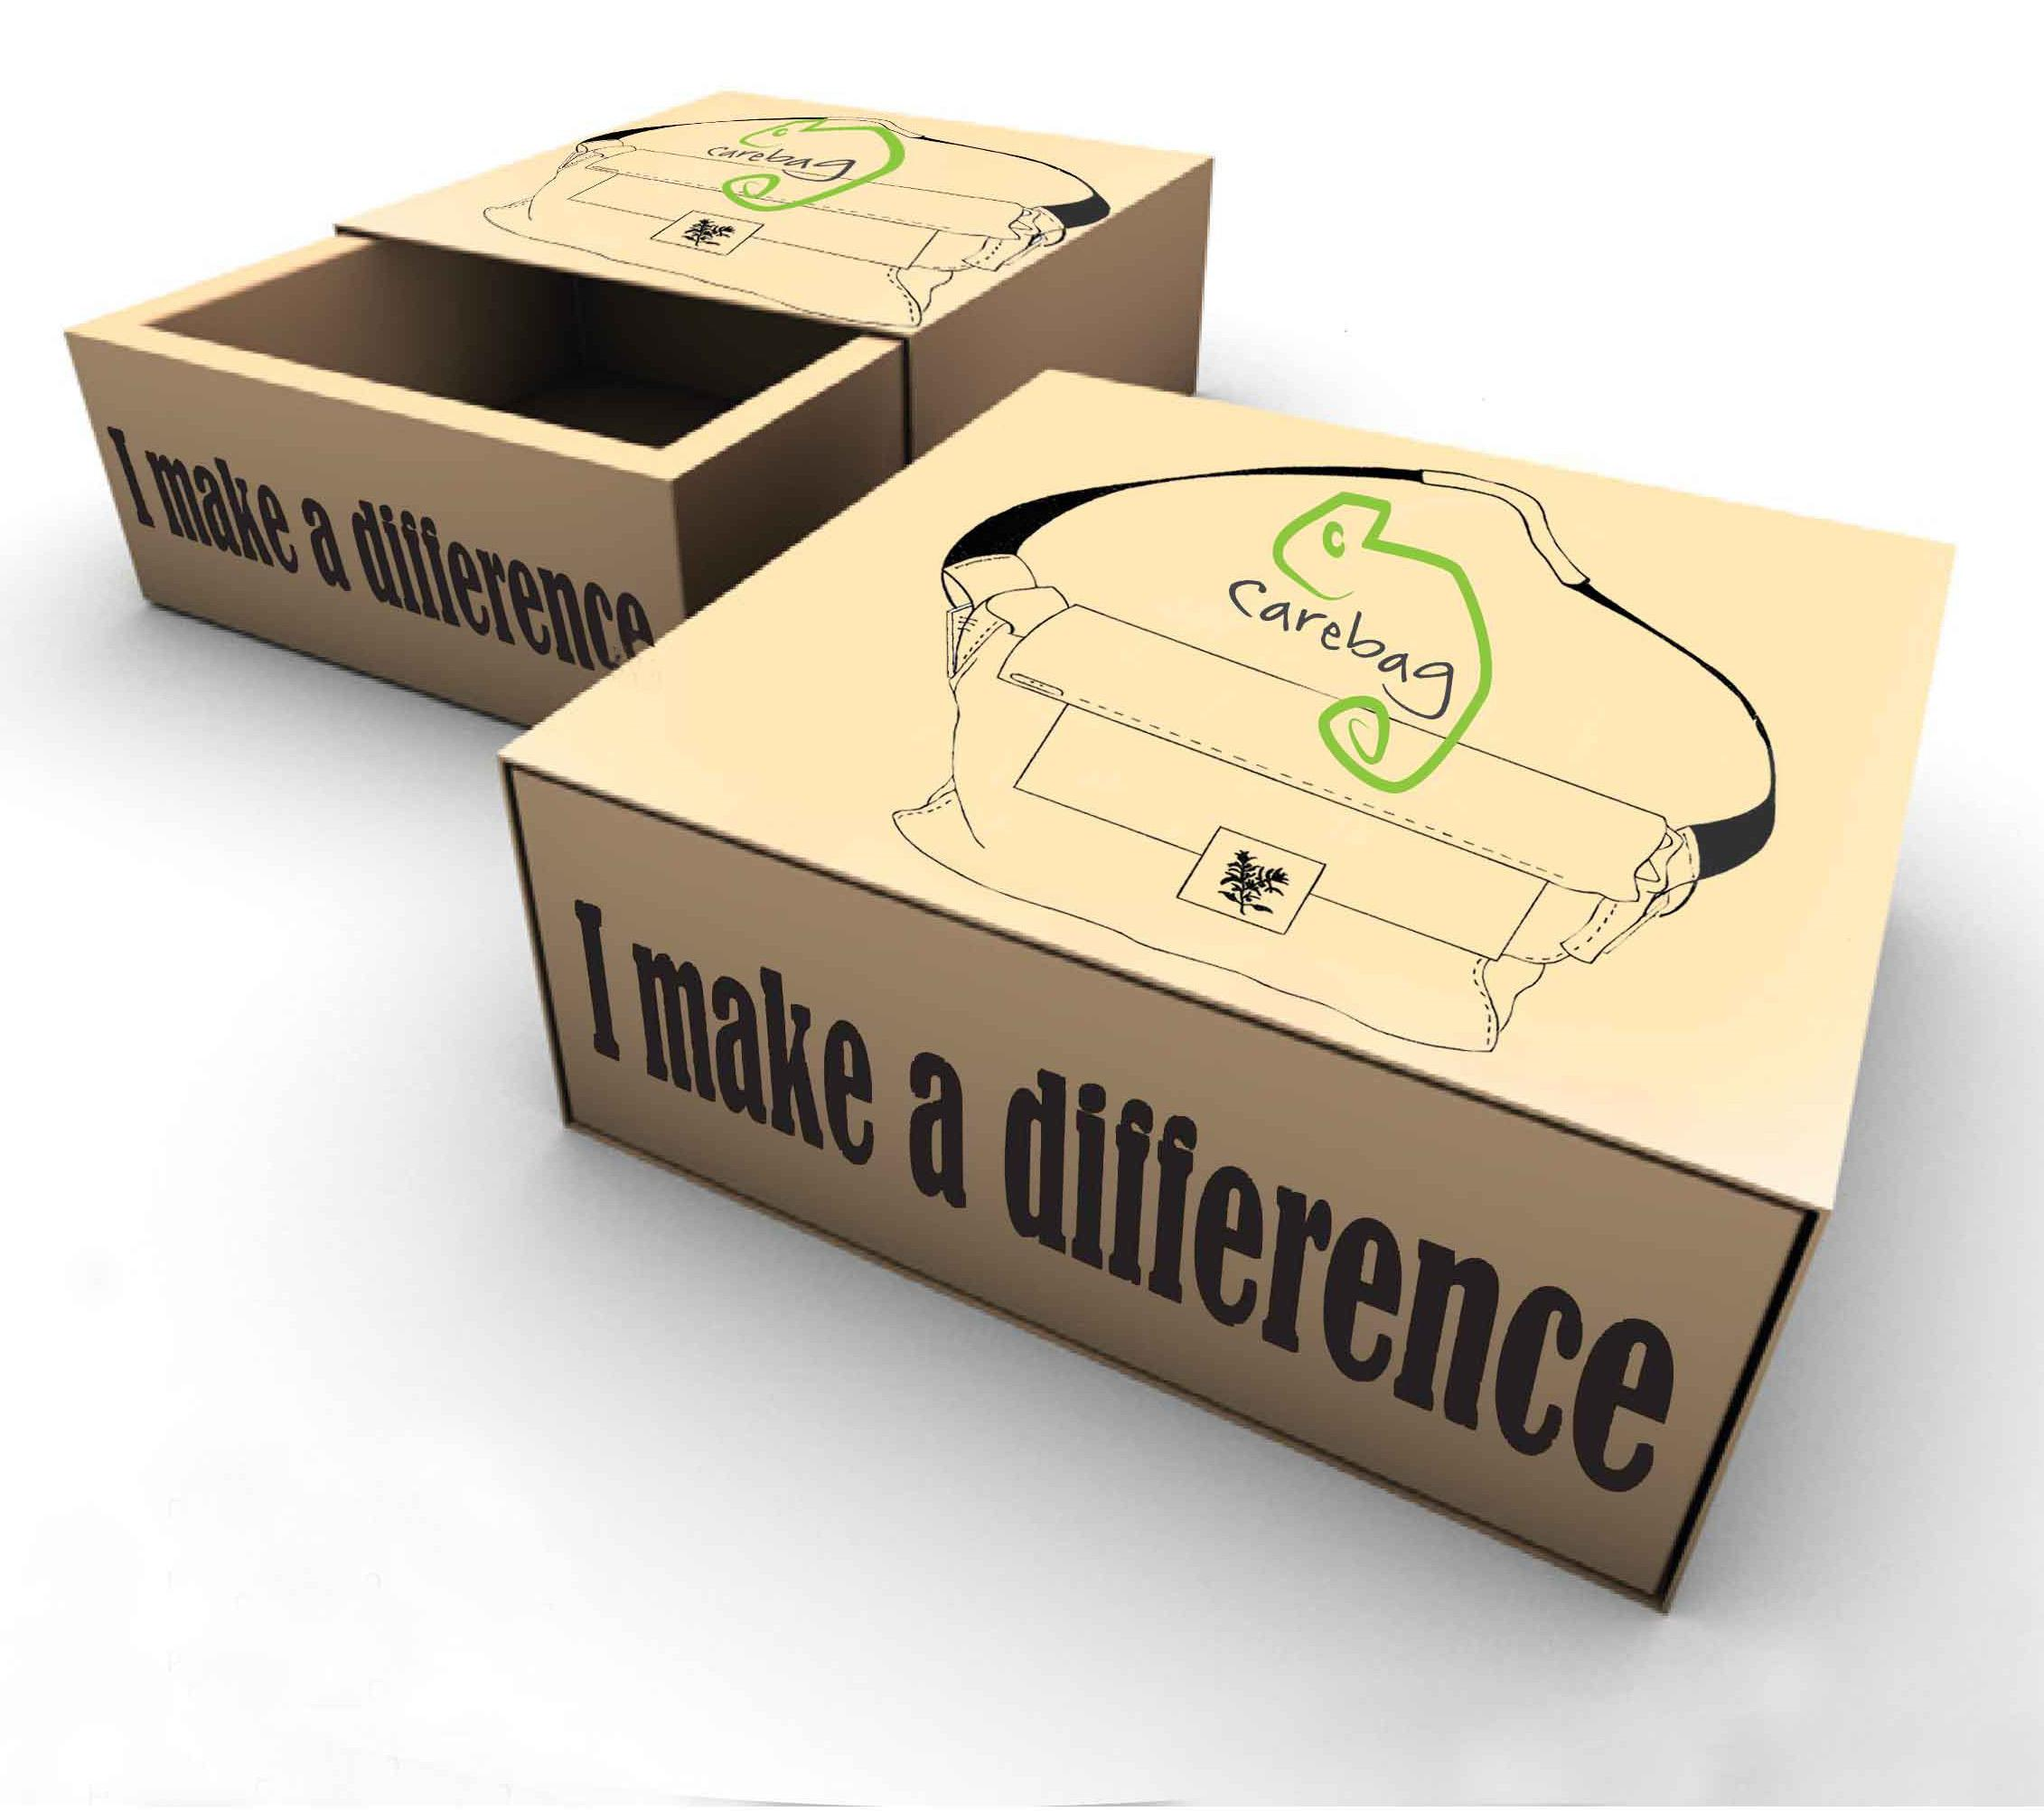 CareBag: I make a difference